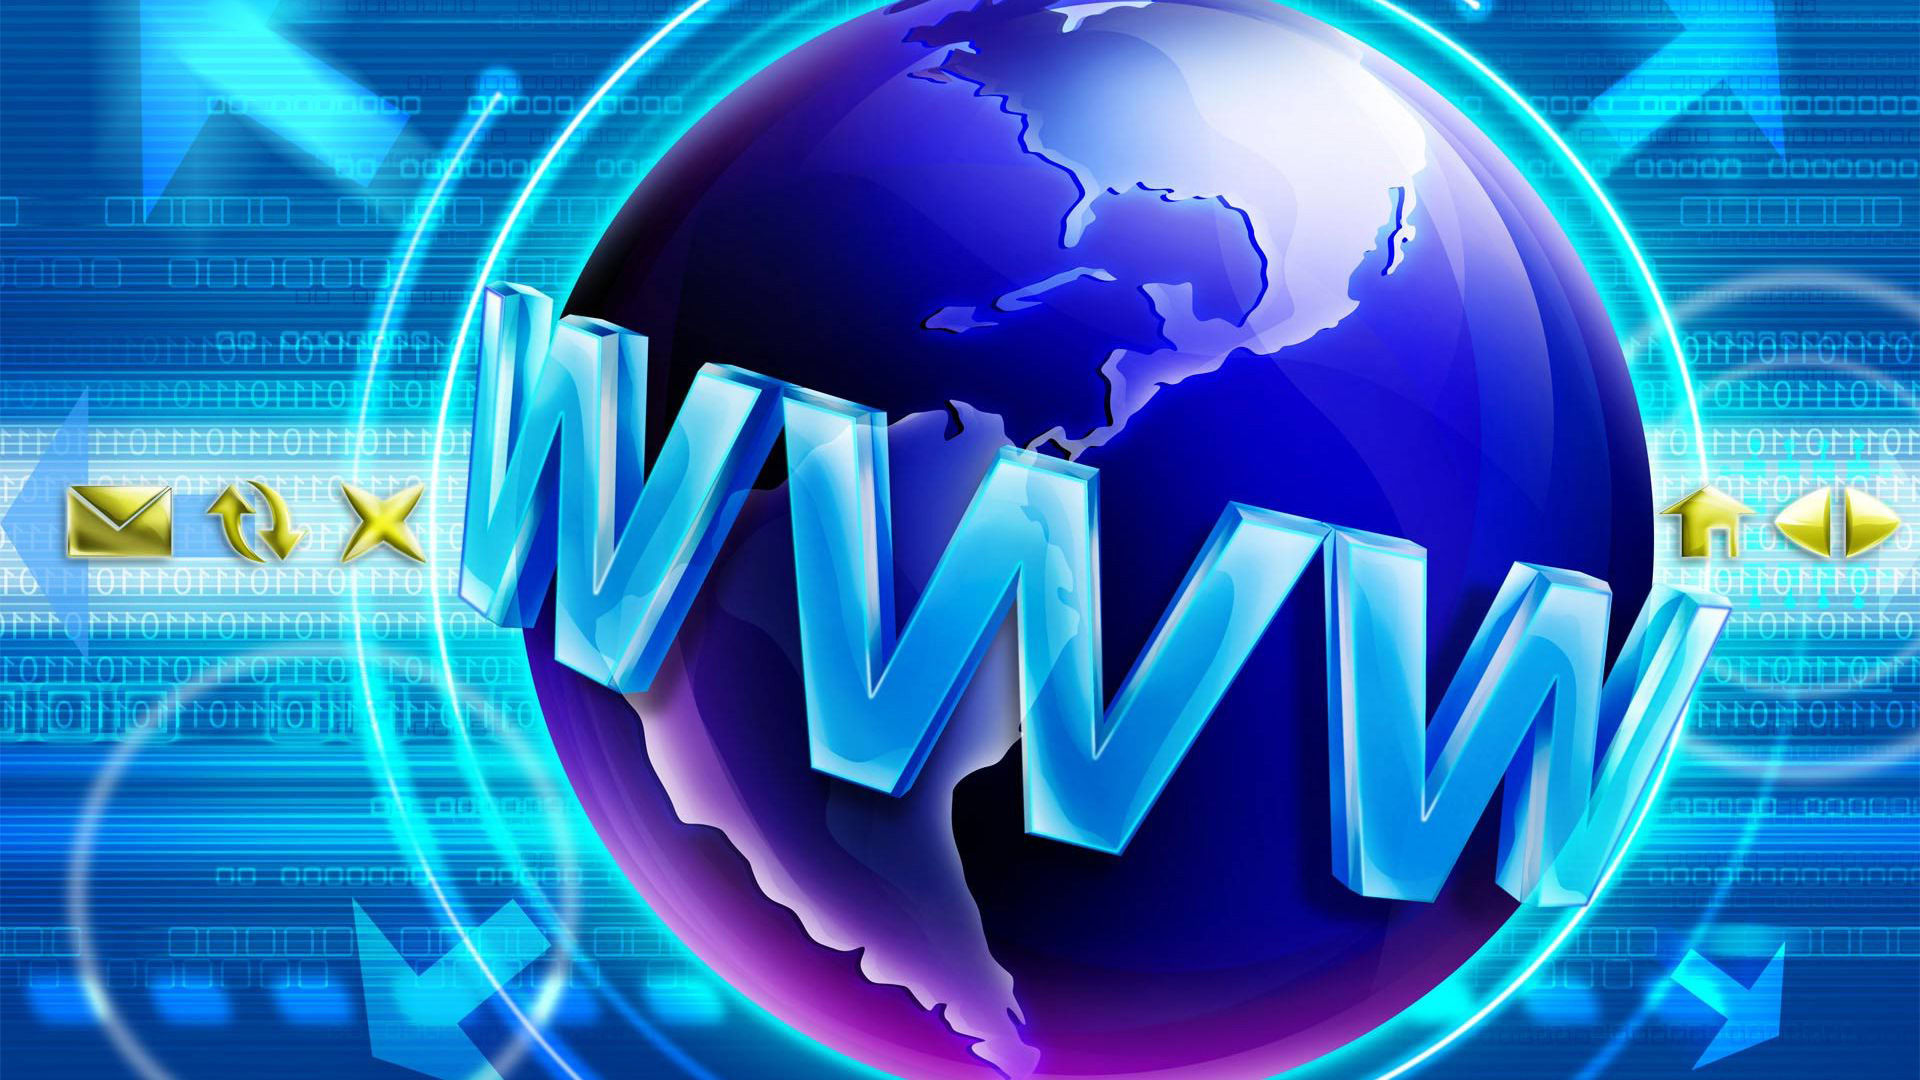 the world wide web The web is under threat join us and fight for it march 12, is the world wide web's 29th birthday here's a message from our founder and web inventor sir tim berners-lee on what we need to ensure that everyone has access to a web worthread more.